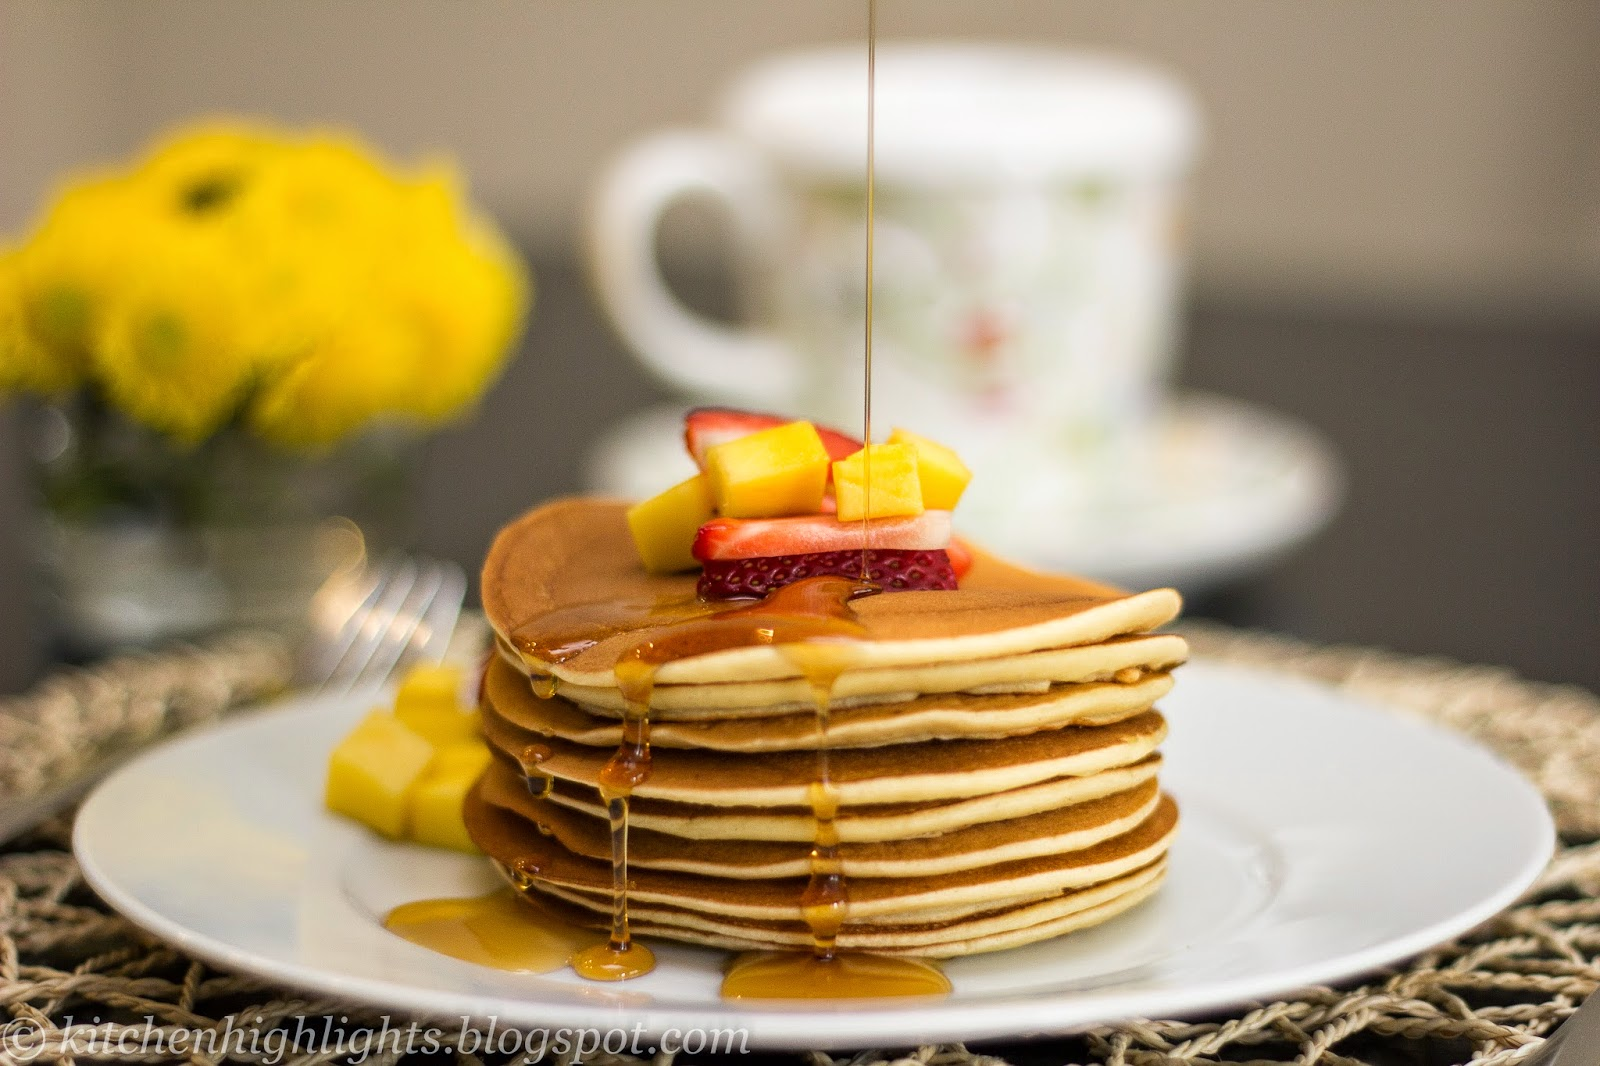 Homemade pancakes are a beautiful and delicious choice for the weekend breakfast or brunch